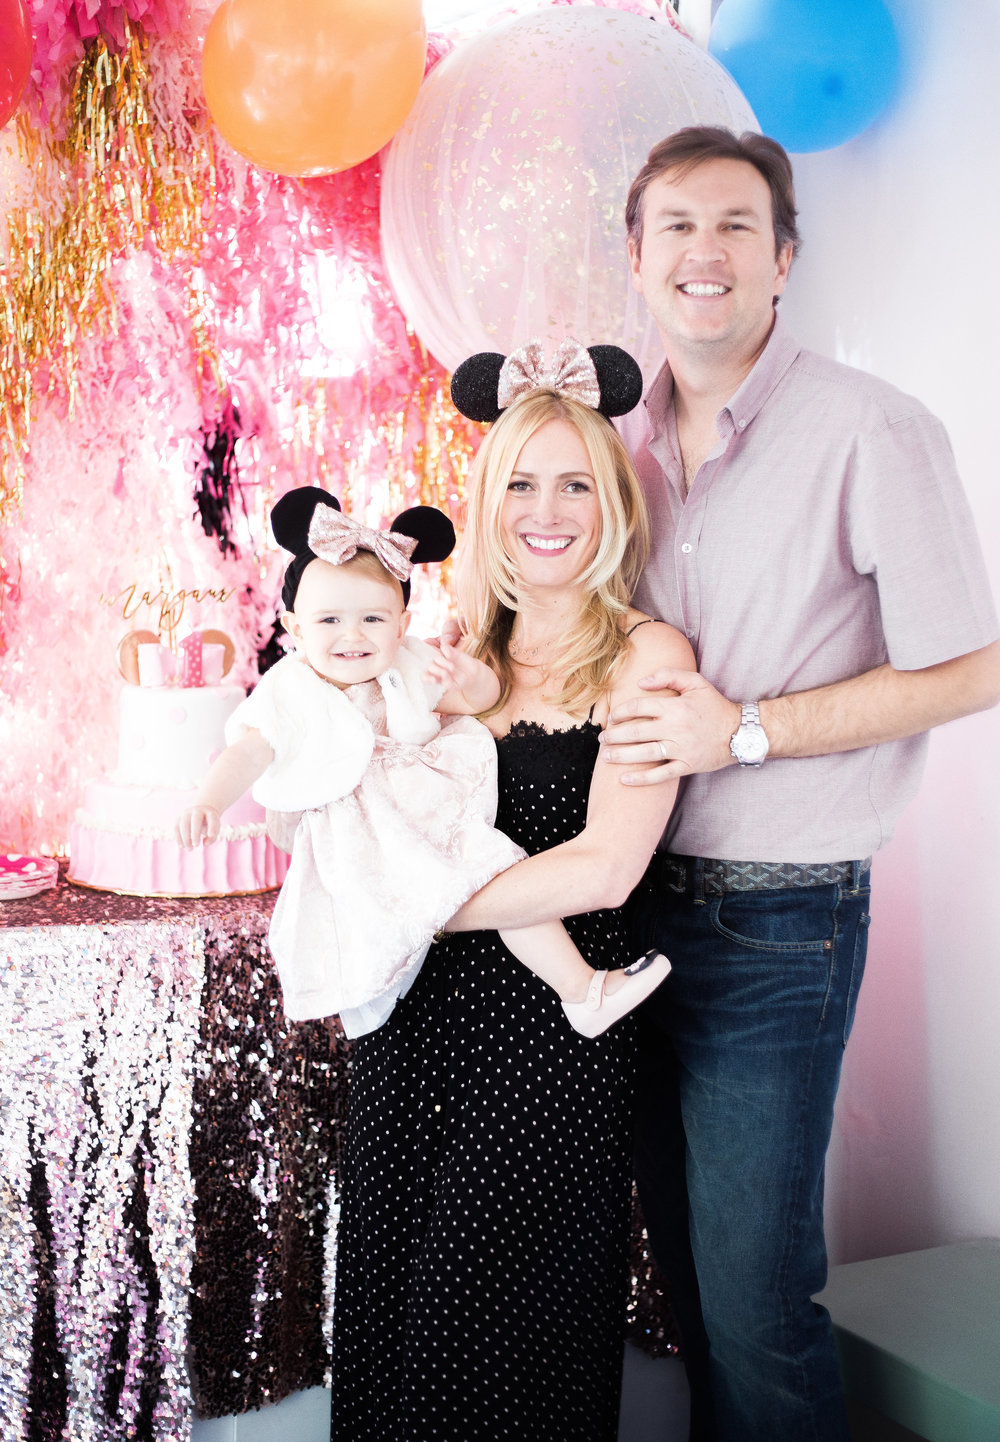 Margaux's_1st_Birthday_11.18.17_-44.jpg